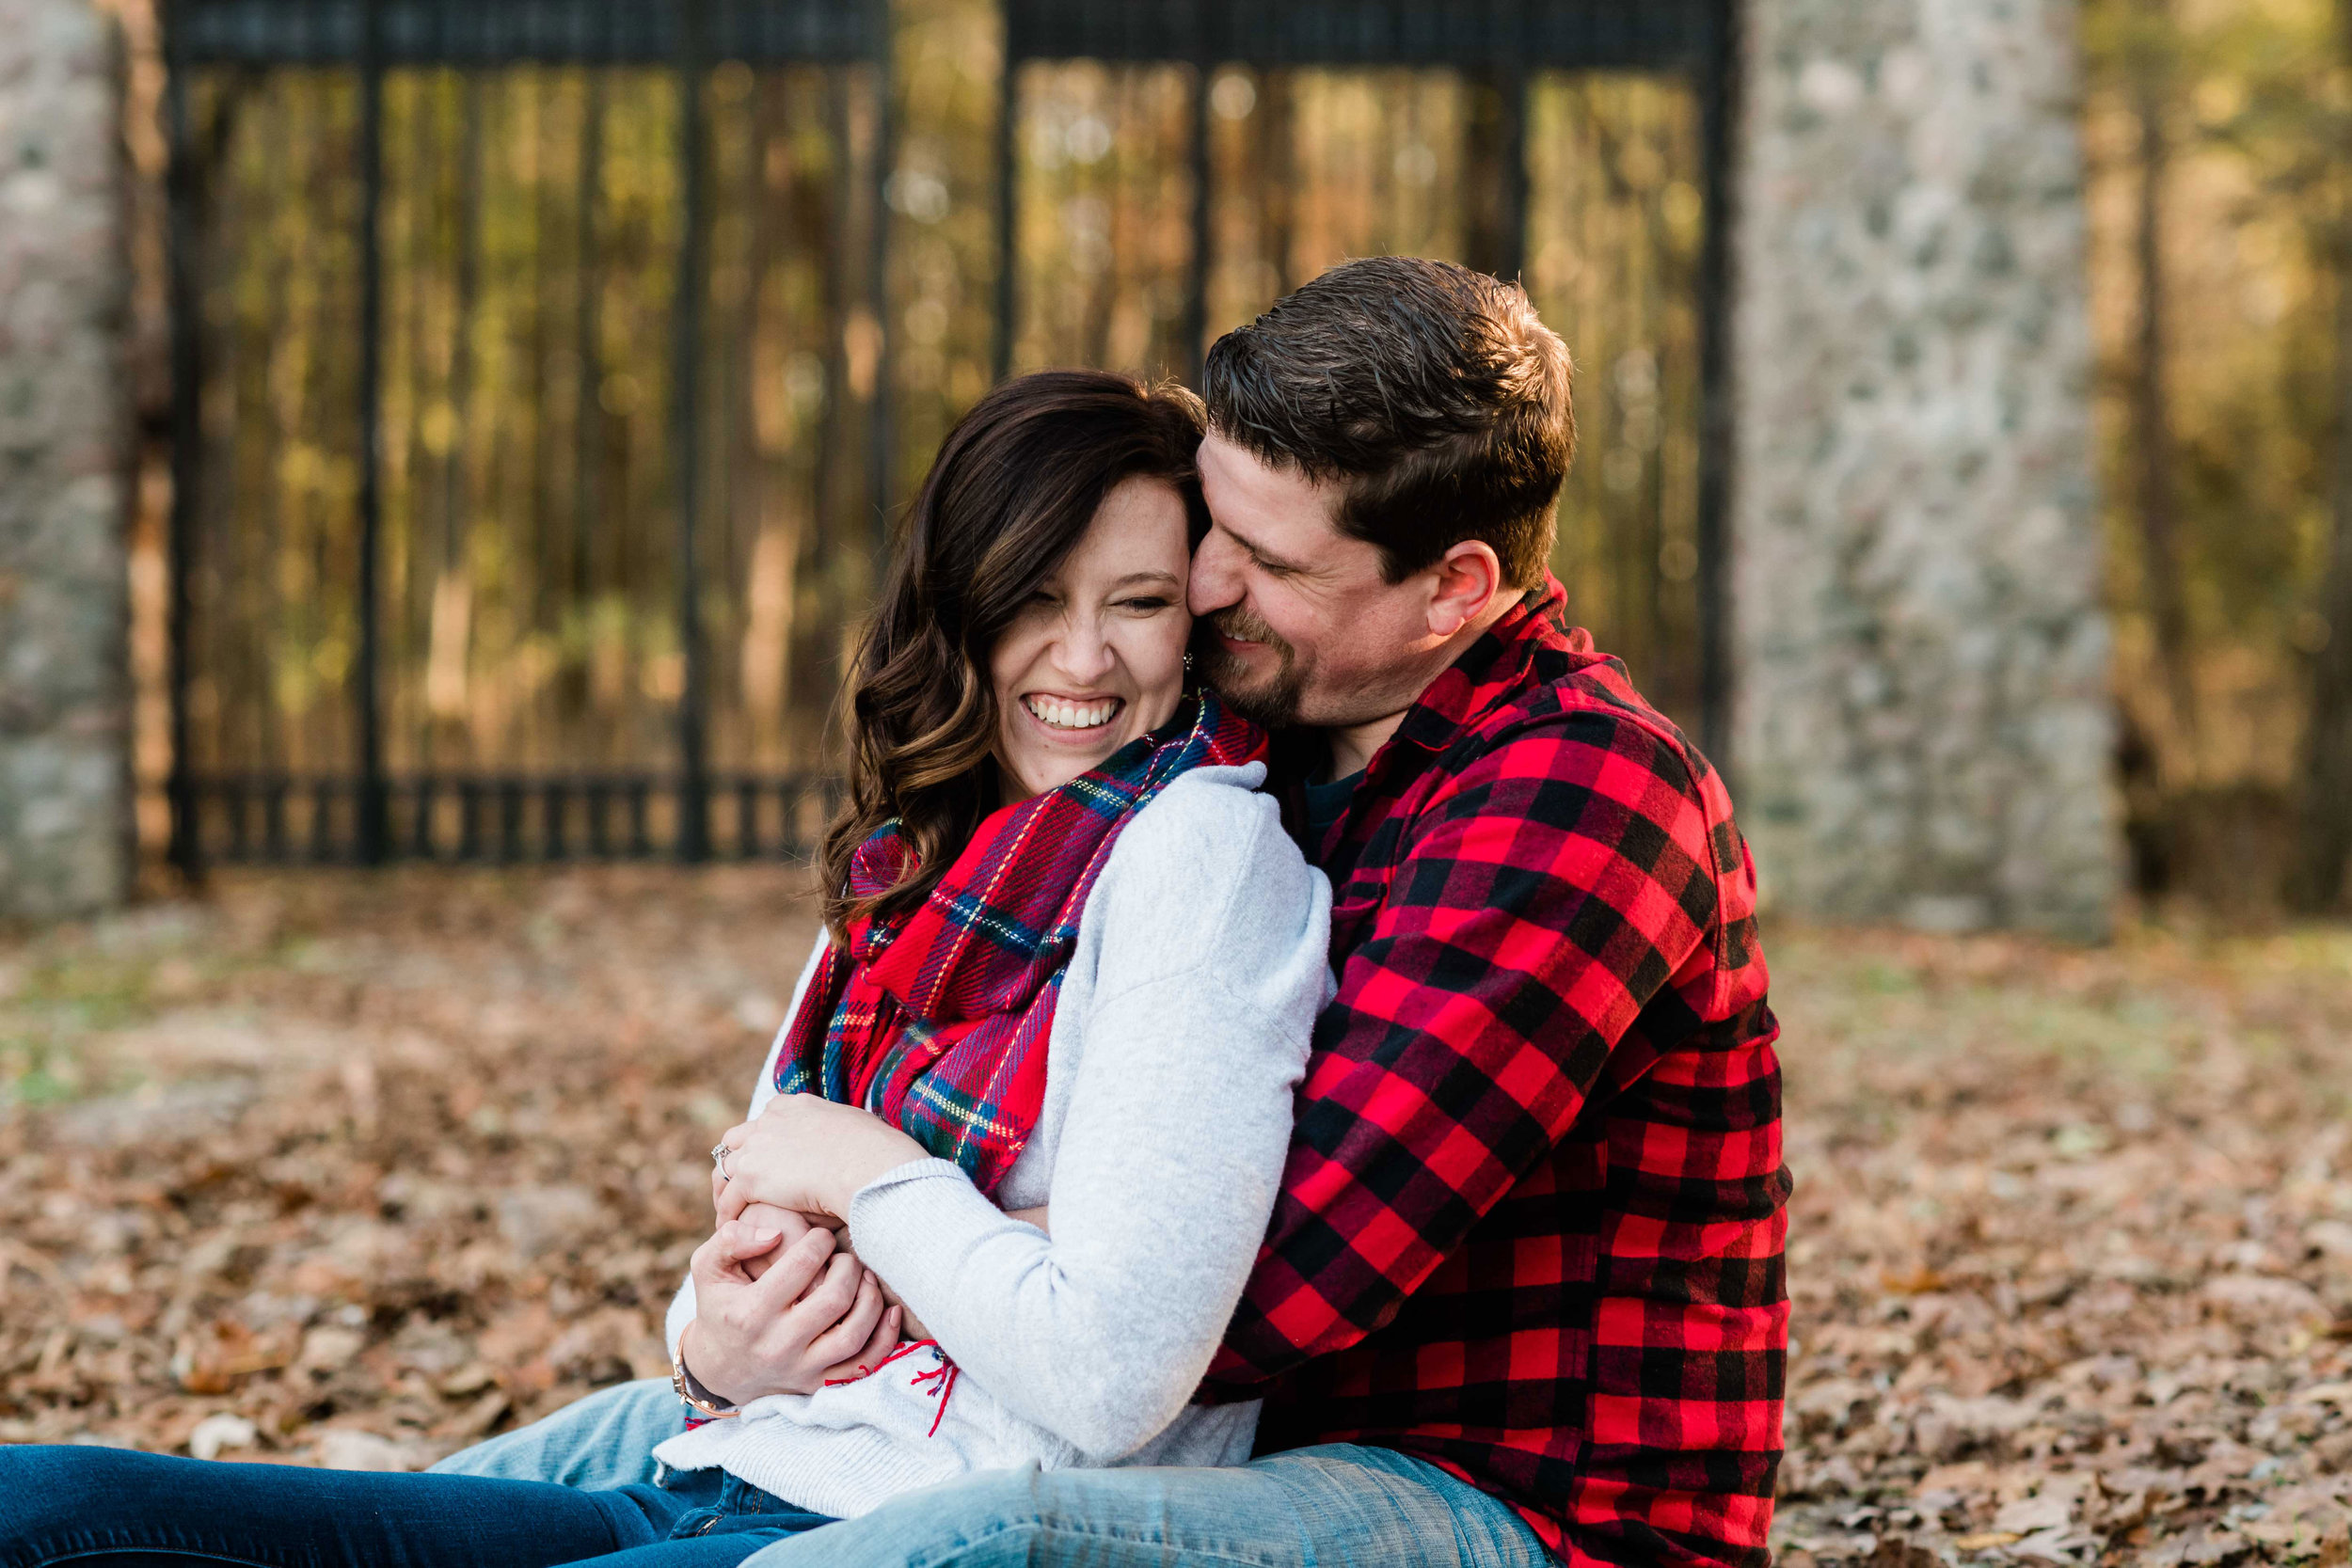 Engaged couple snuggling in the leaves outside